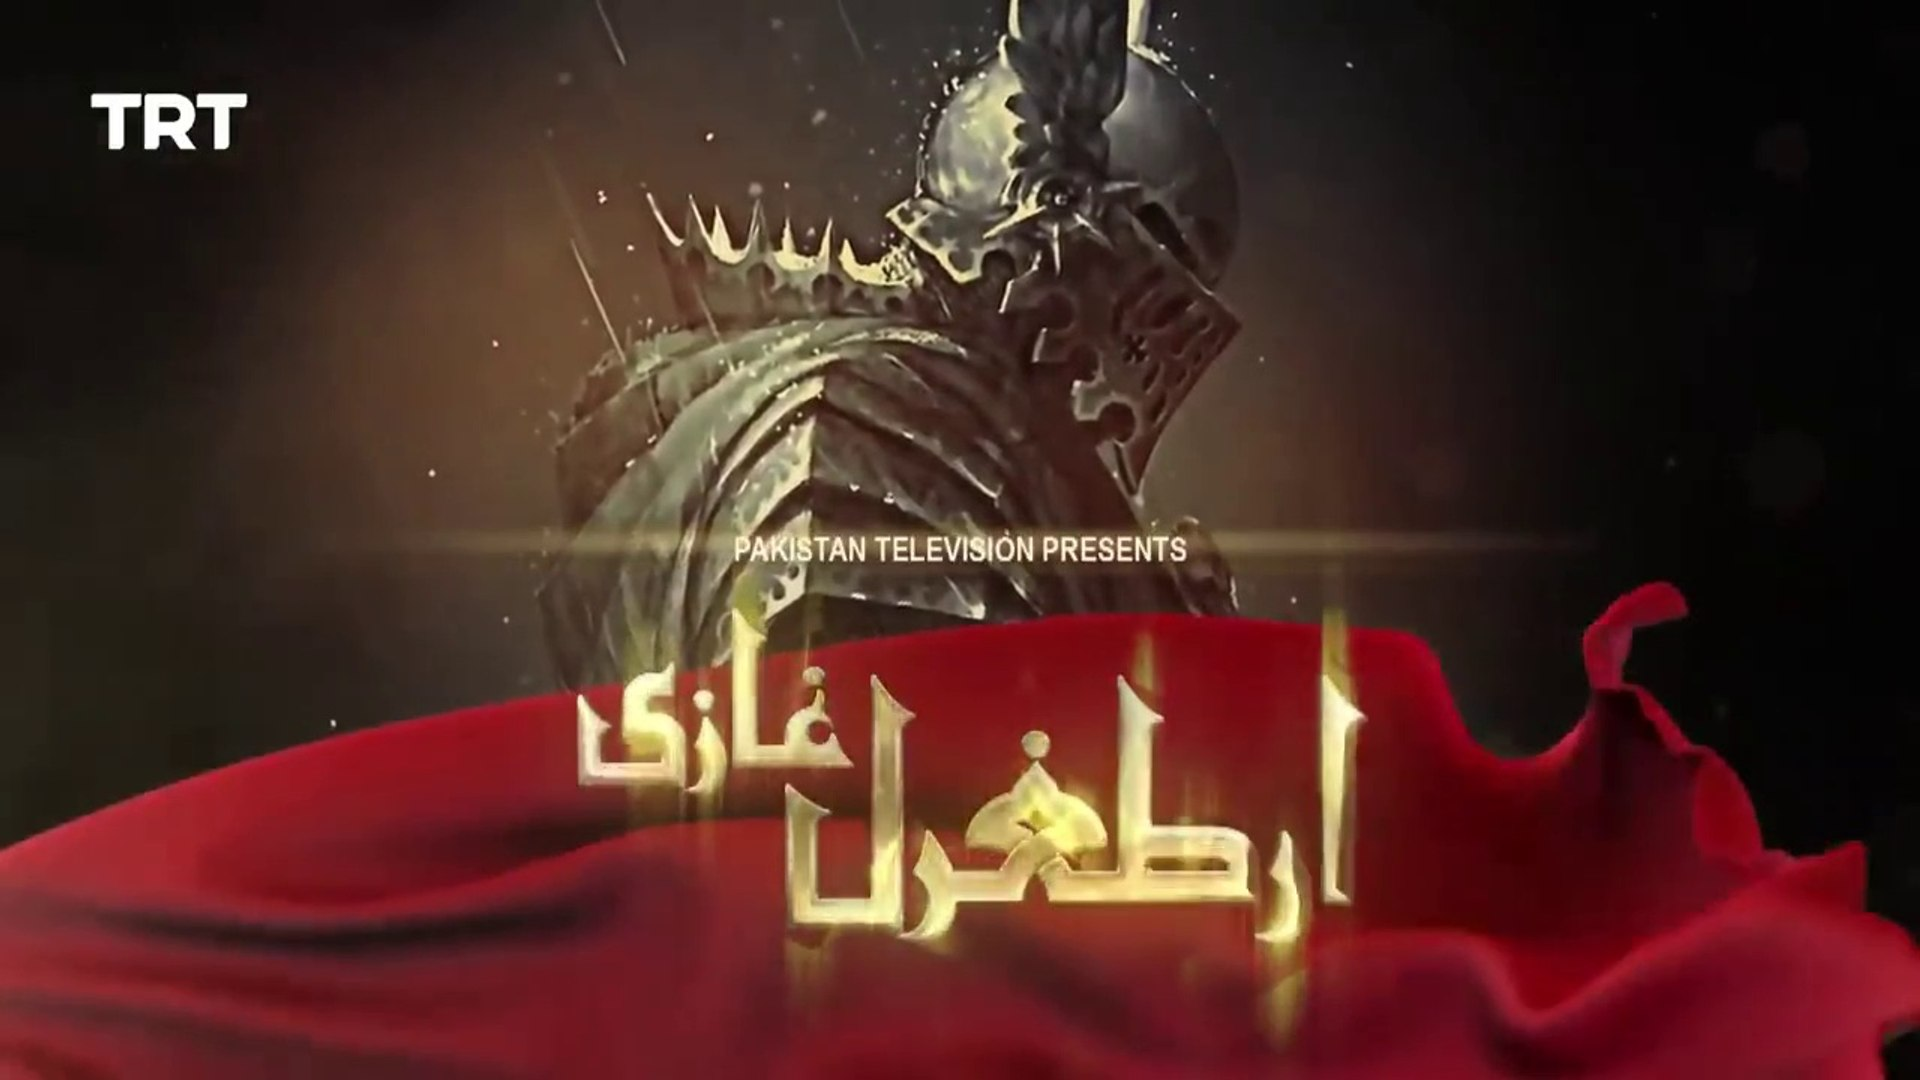 Dirilis Ertugrul Season 1 Episode 4 Urdu Dubbed Turkish TV Drama Watch Online